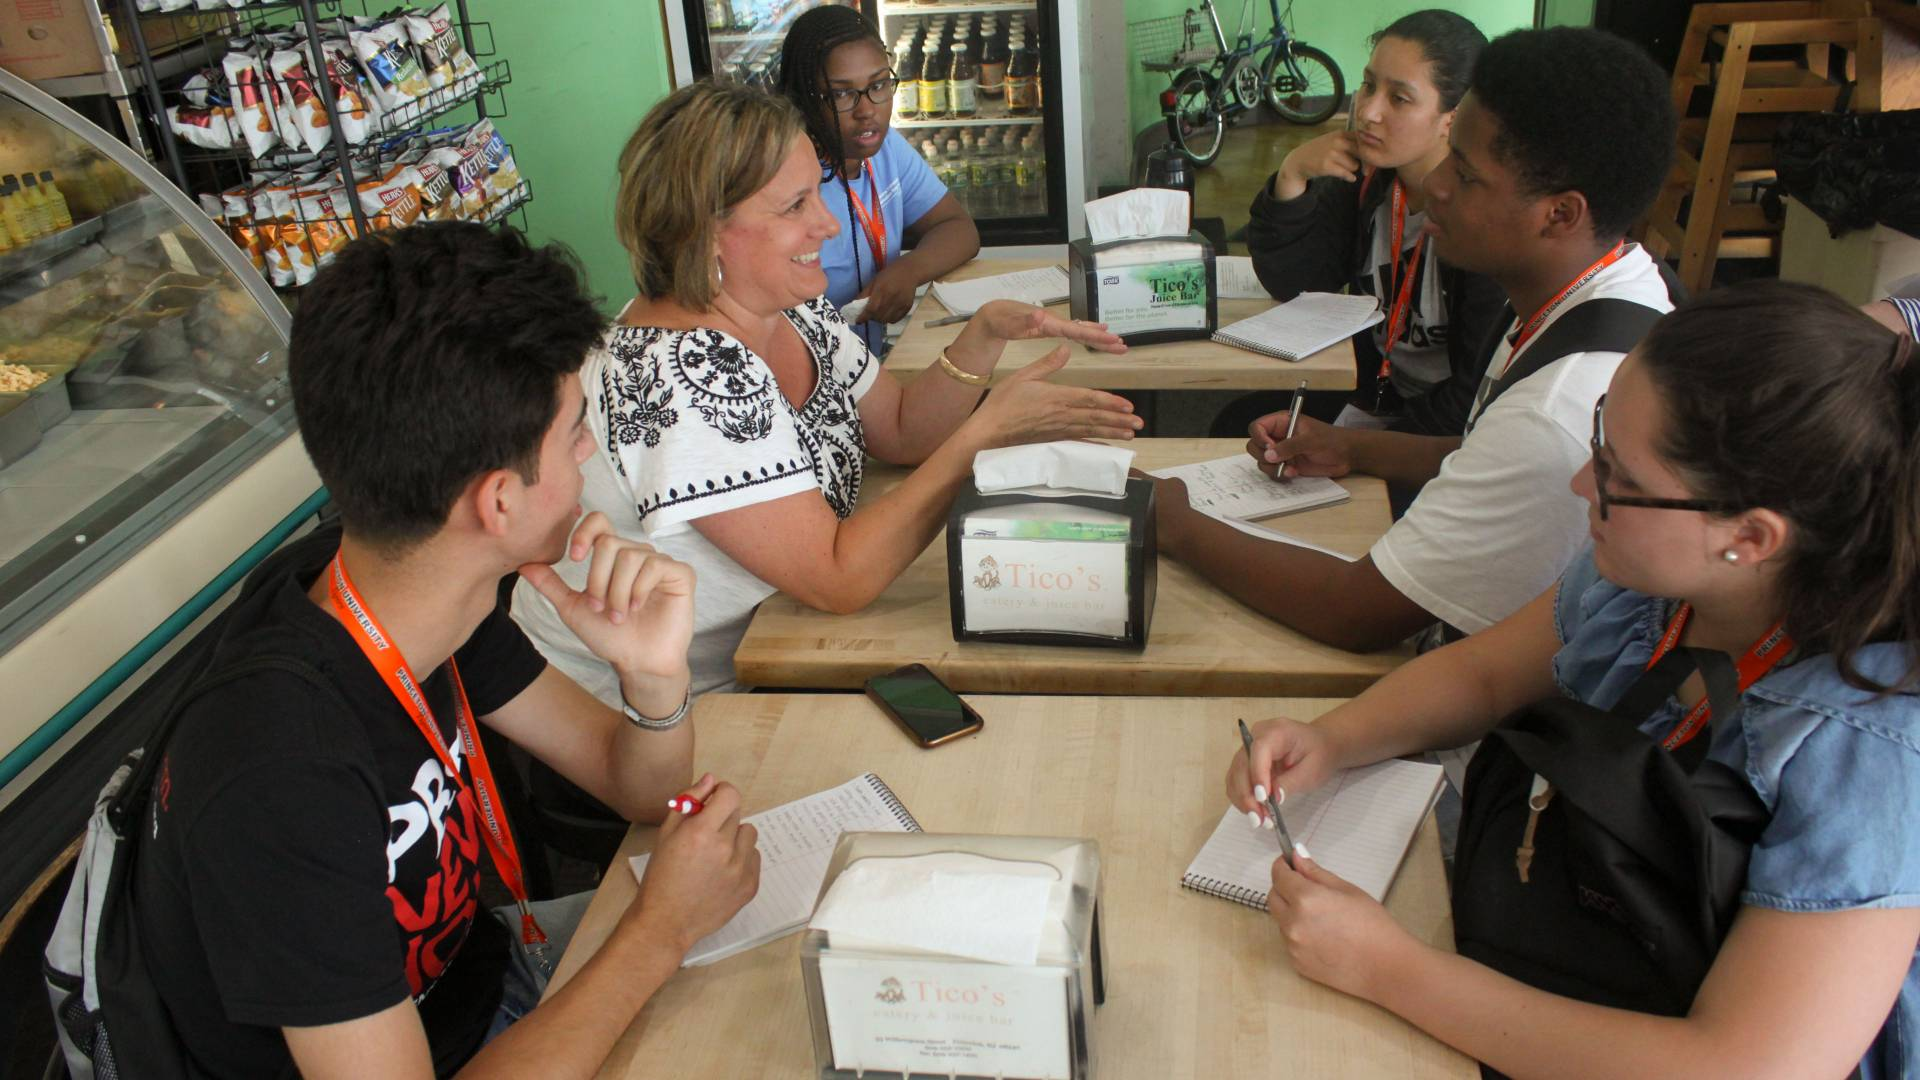 Students in Summer Journalism Program interview store owner